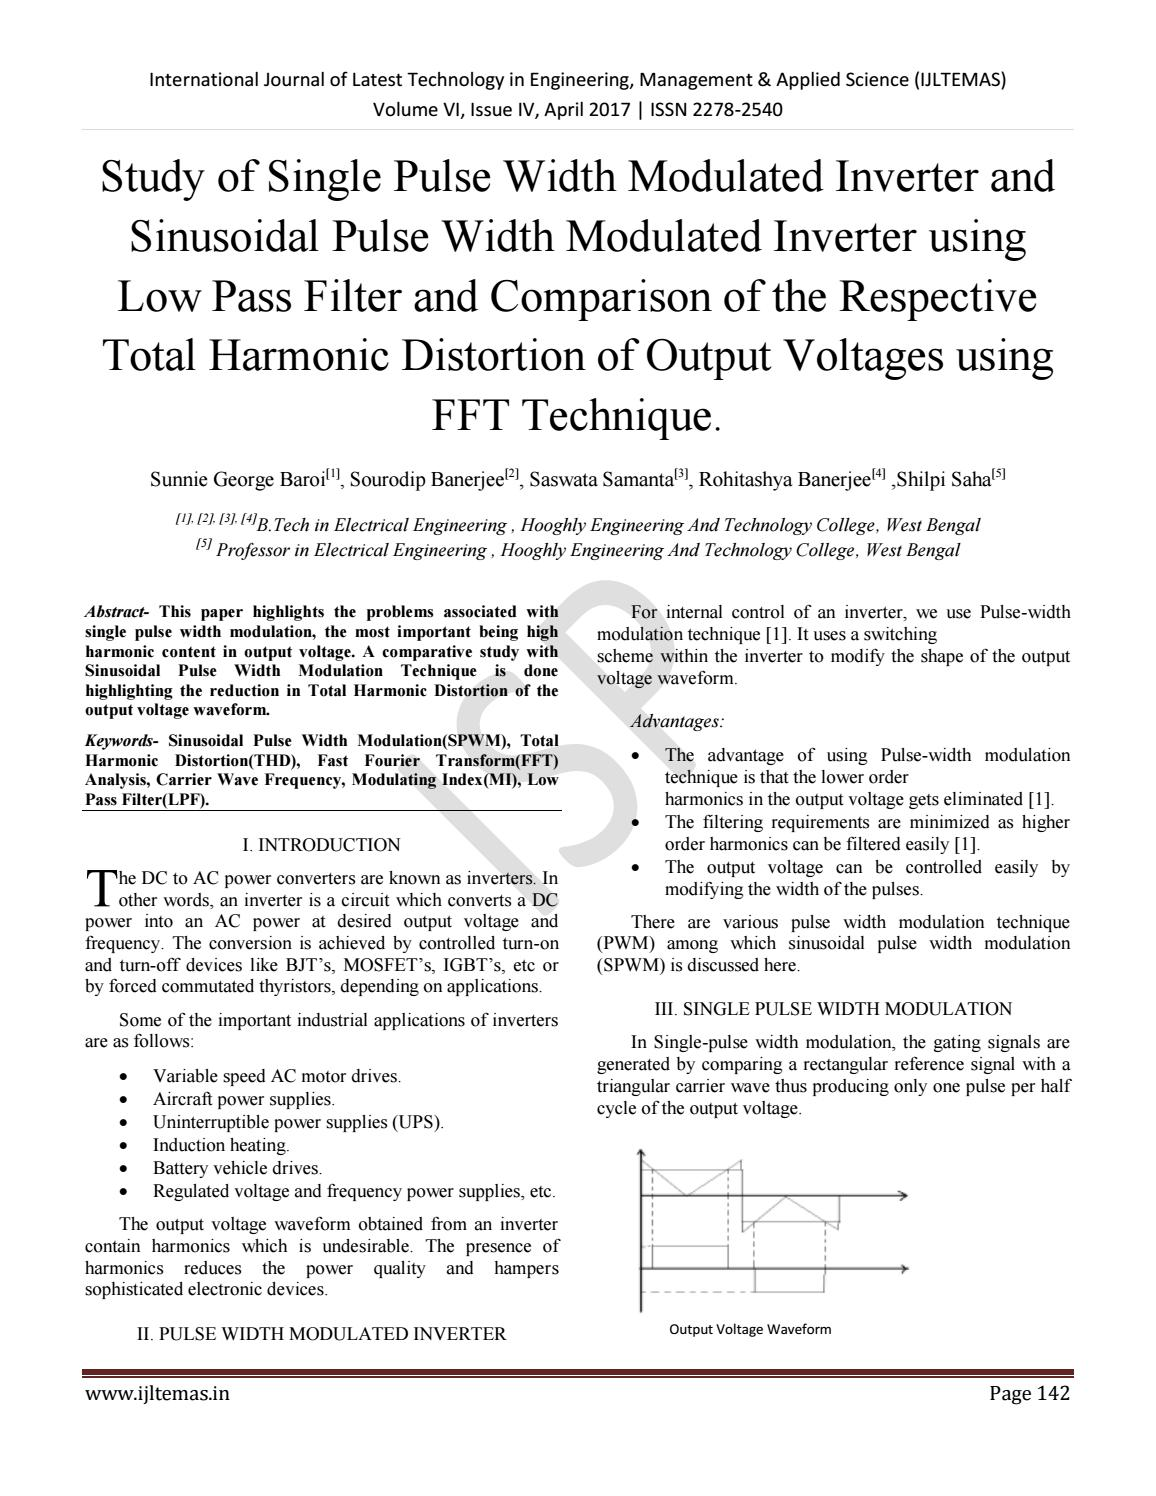 Study Of Single Pulse Width Modulated Inverter And Sinusoidal Is A Circuit To Control Motor Speed Uses Modulation Pwm Using L By International Journal Latest Technology In